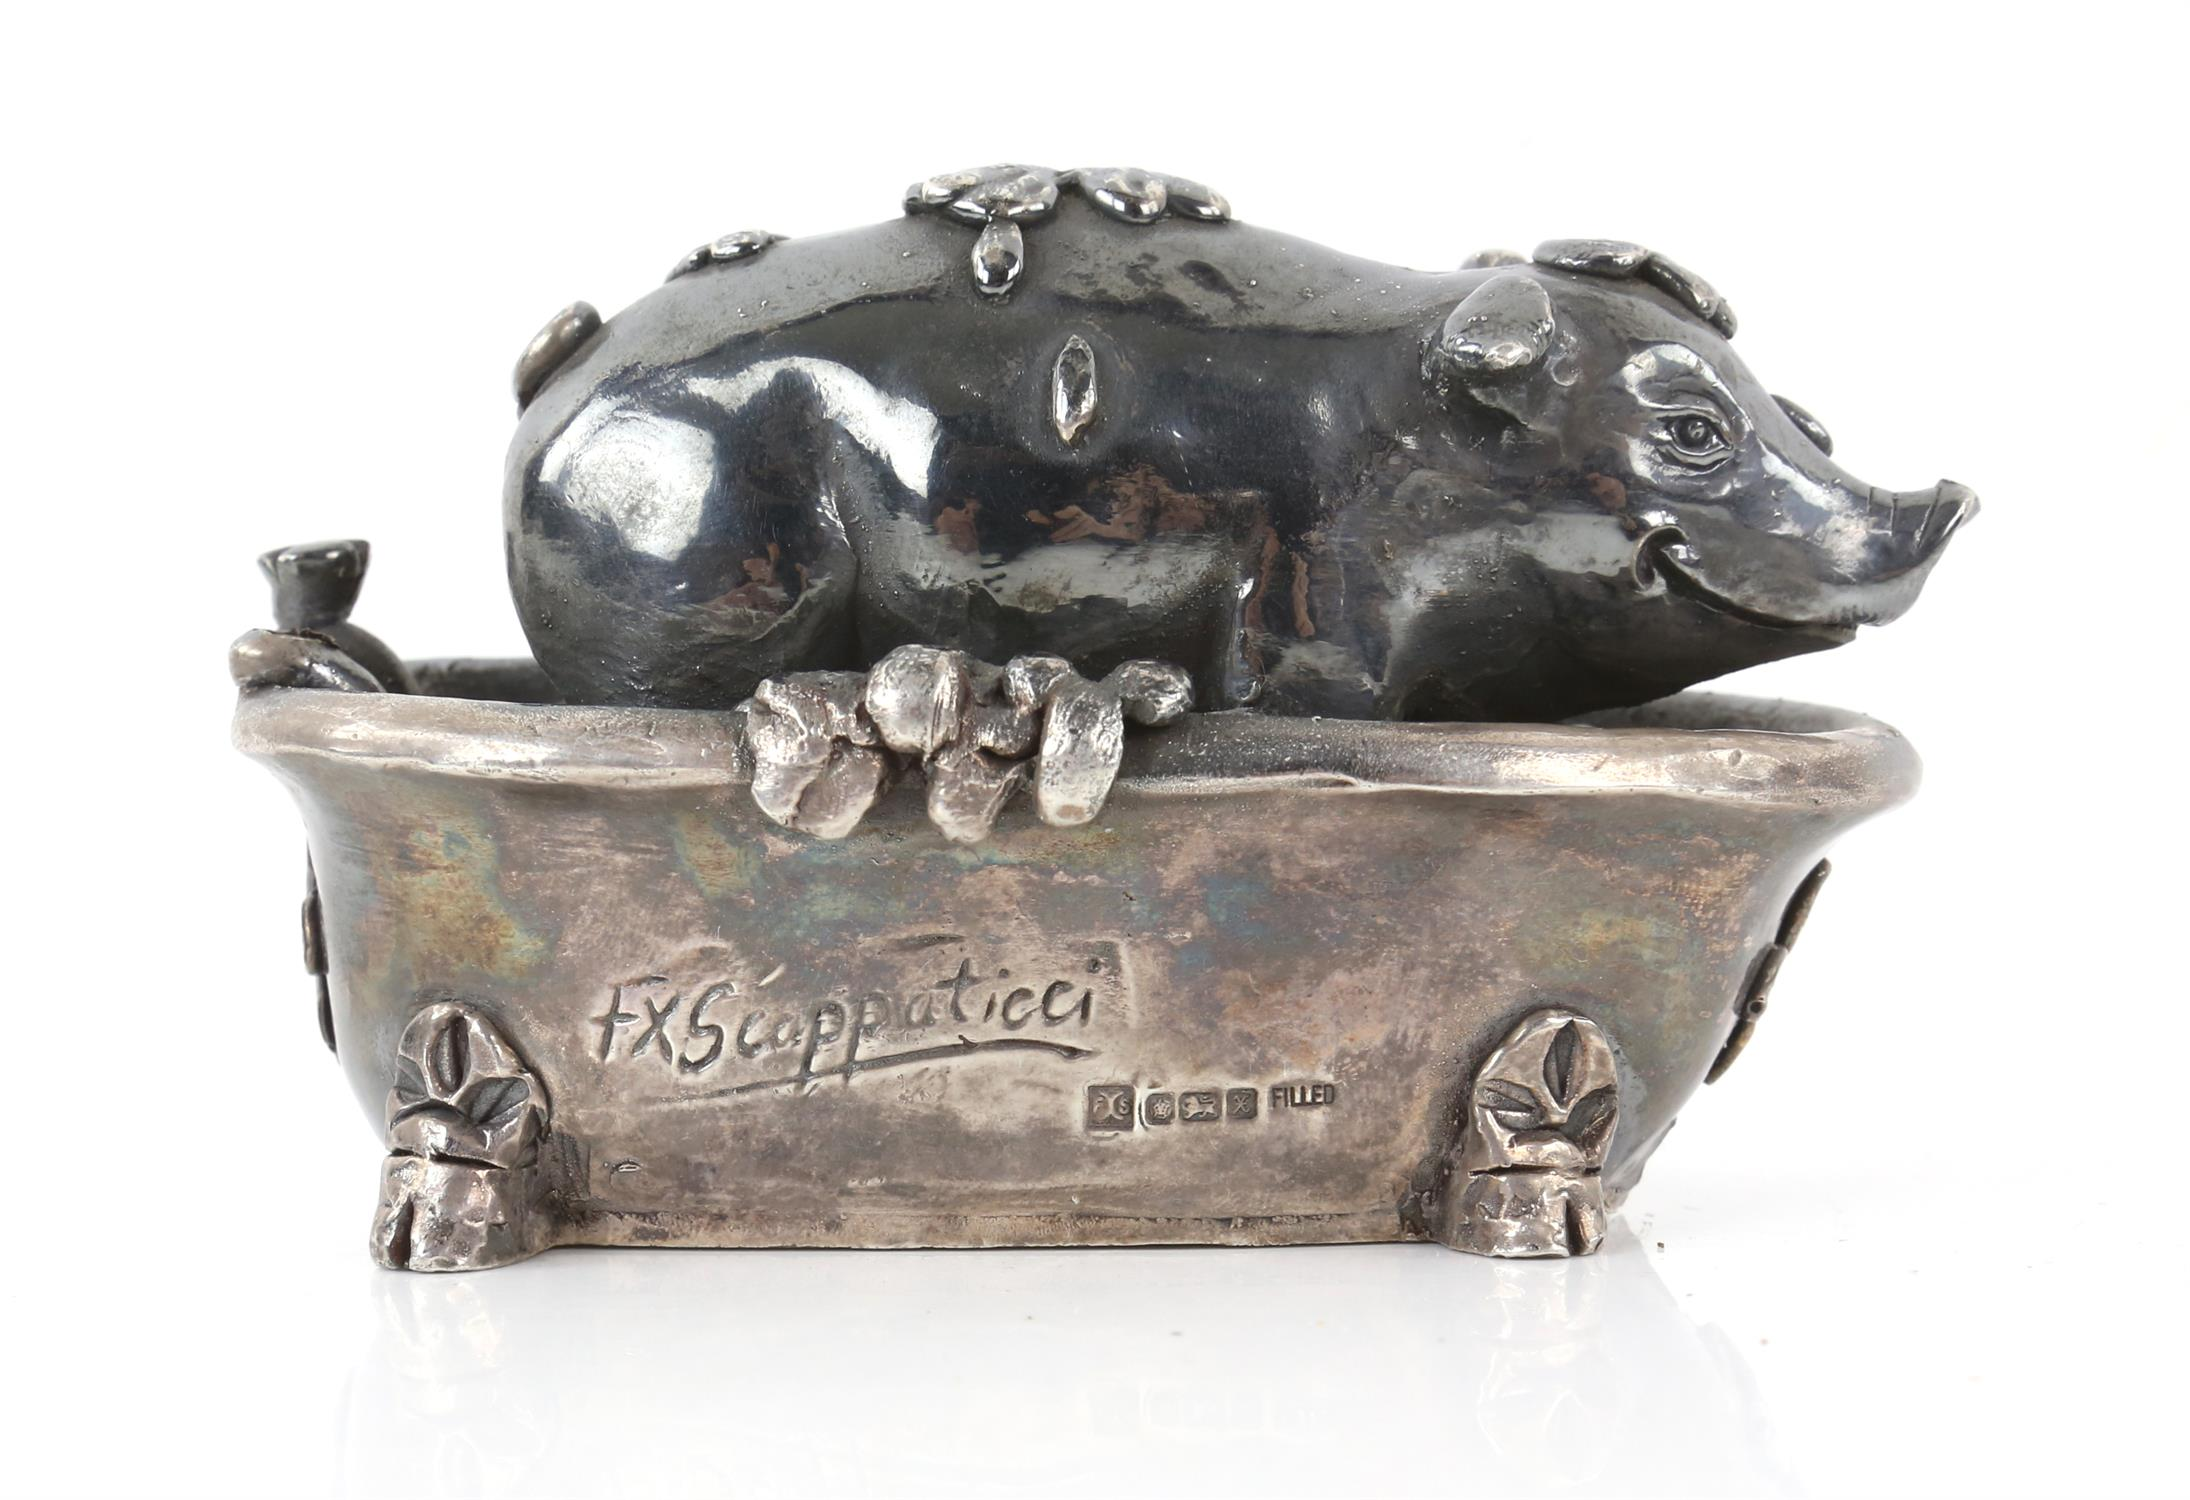 Large filled silver model of a pig in a bathtub by FX Scappaticci, Sheffield 1997